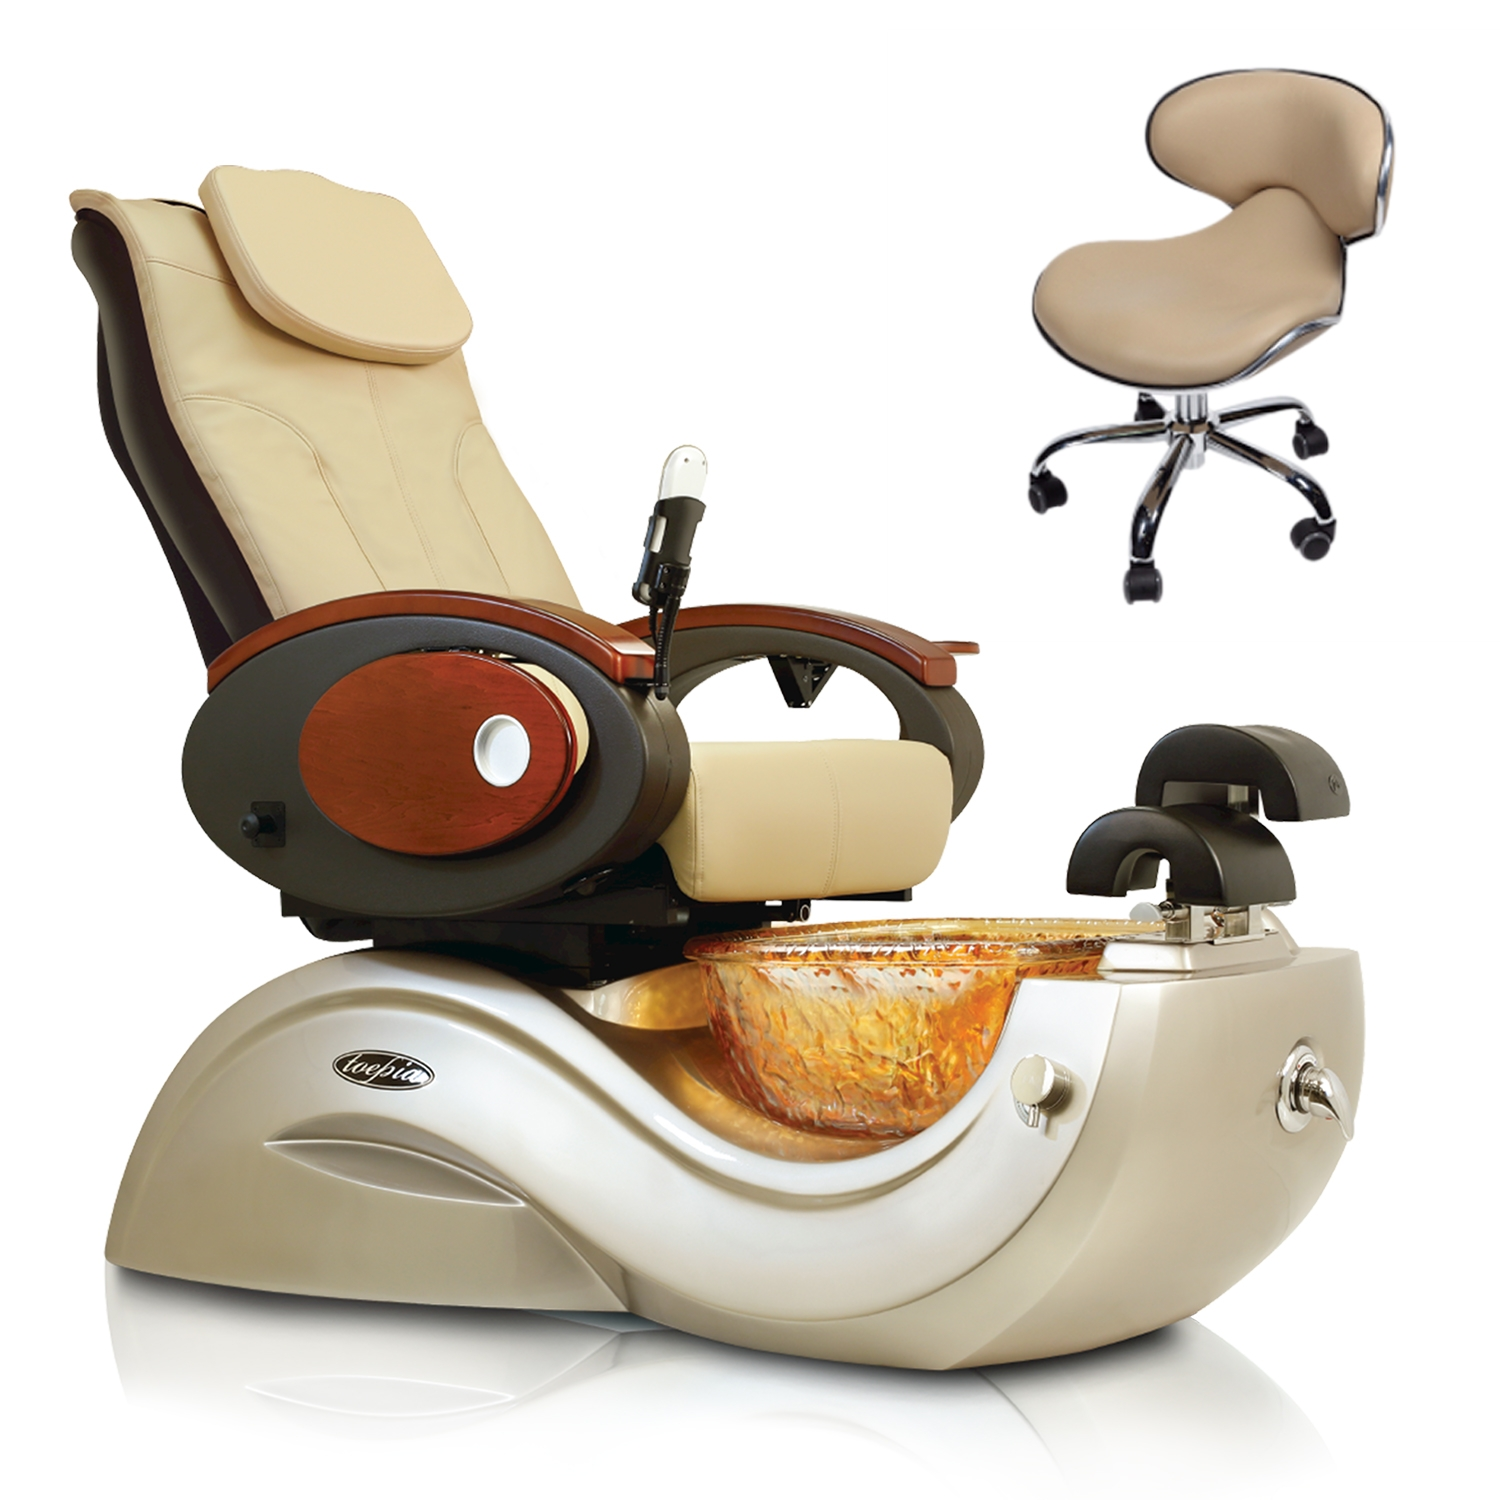 Pedicure Foot Spa Massage Chair Pedicure Spa Chair